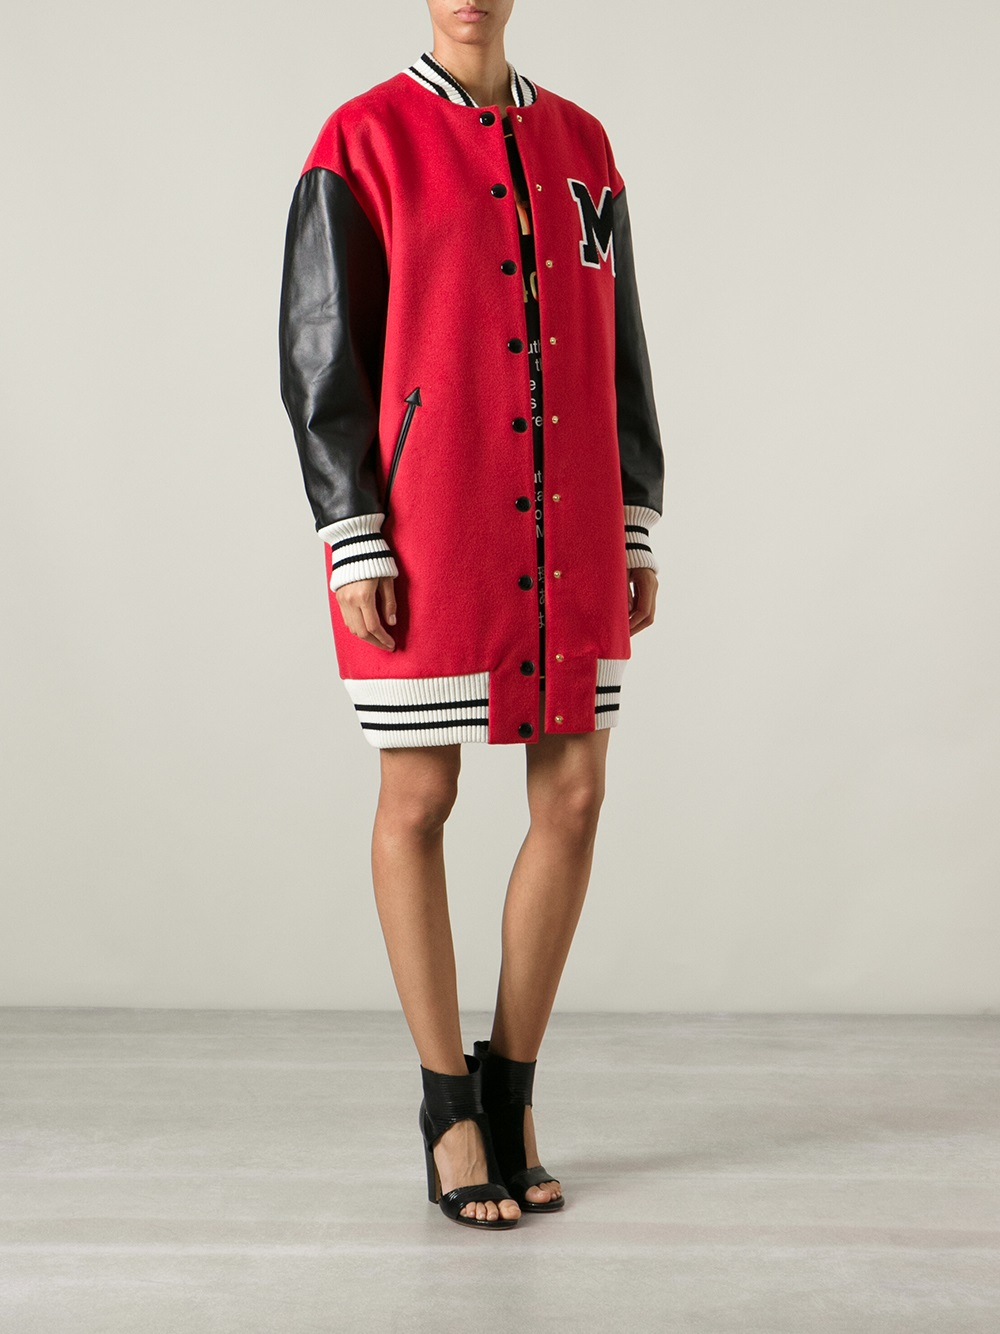 Moschino Varsity Bomber Jacket in Red | Lyst